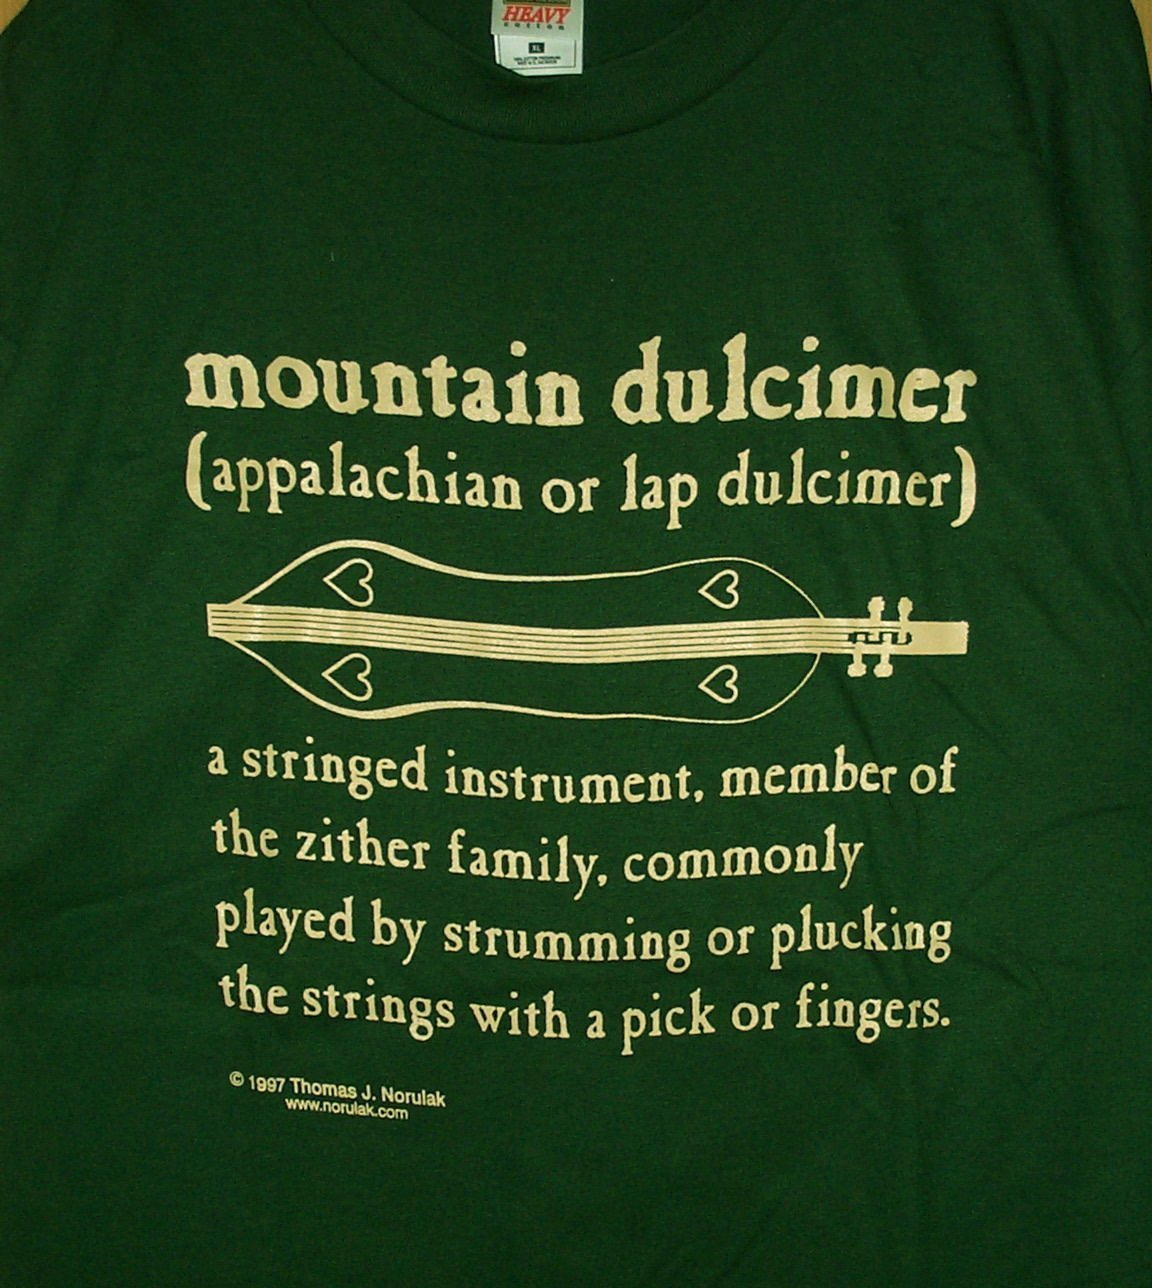 Mountain Dulcimer Definition T-Shirt